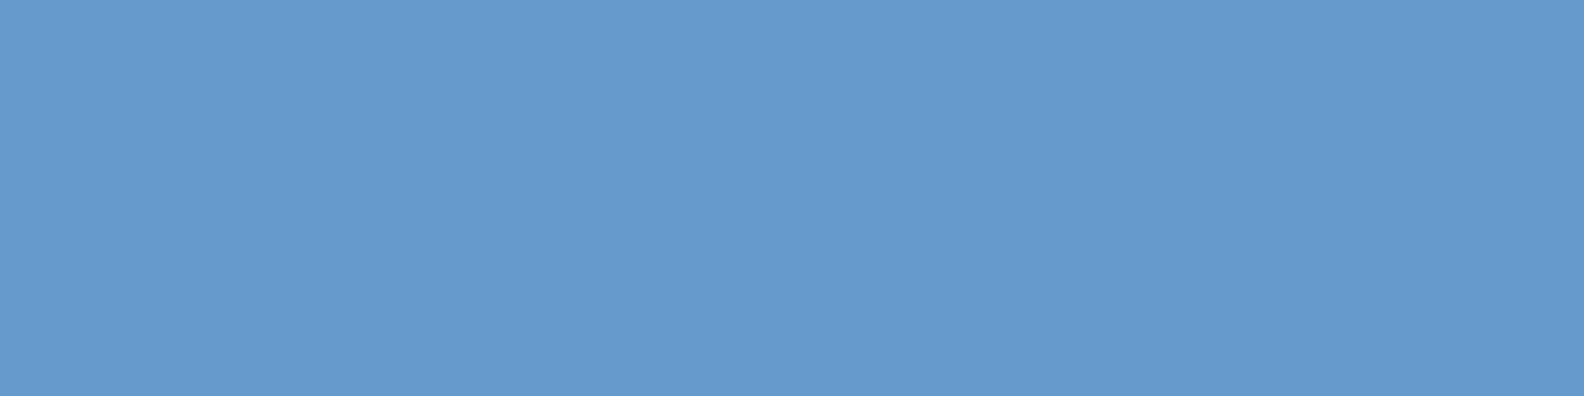 1584x396 Blue-gray Solid Color Background